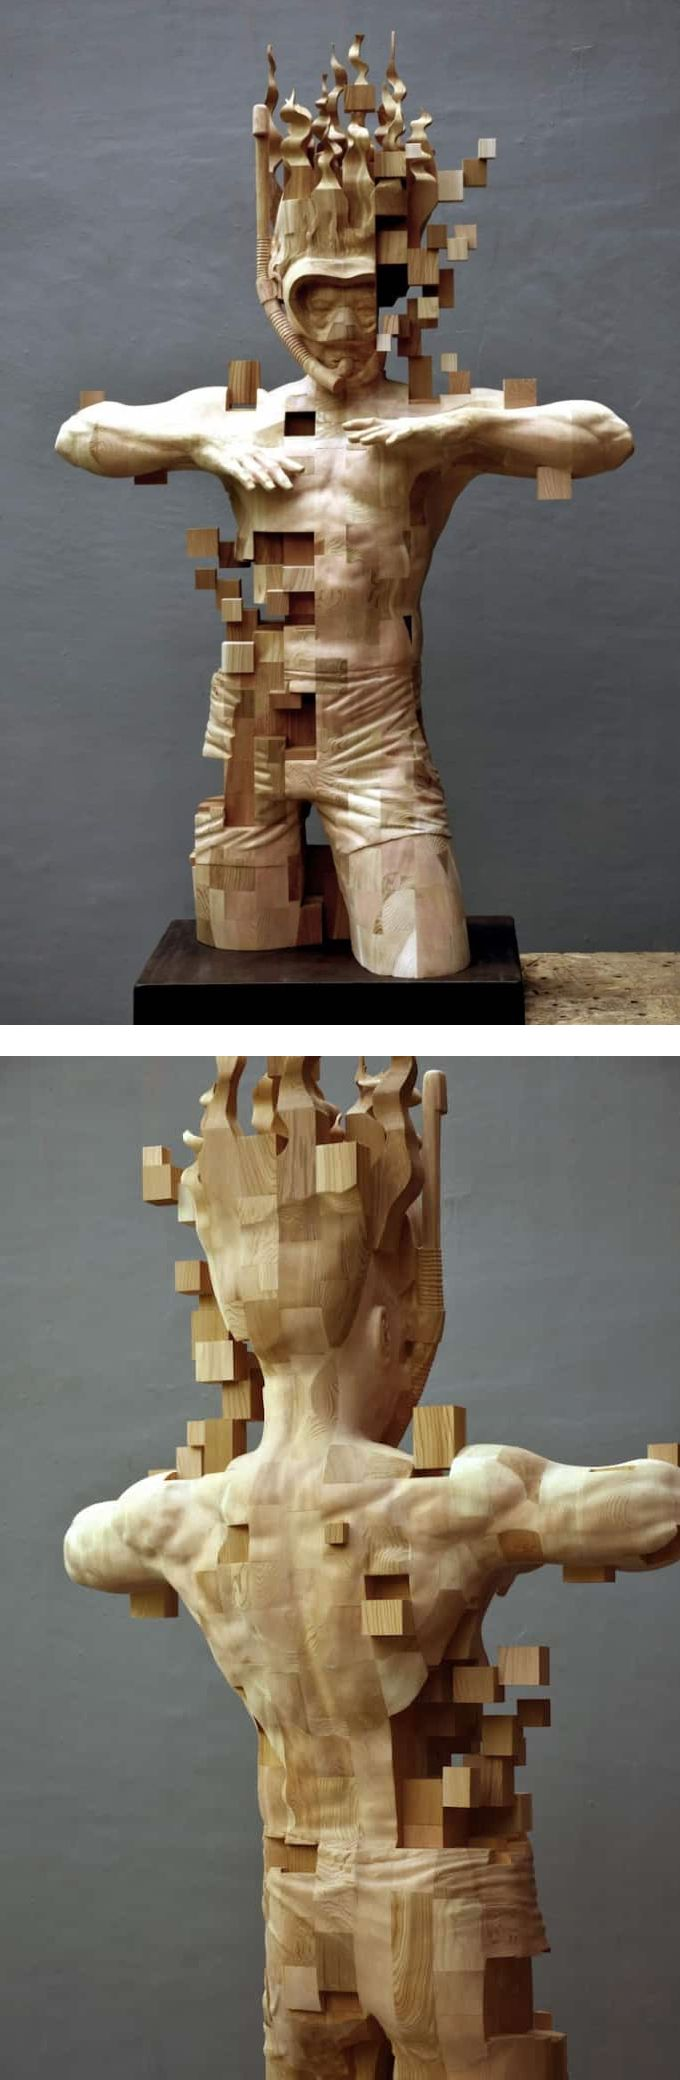 Best Sculptural Woodcarving Images On Pinterest Wood - Taiwanese sculpture uses wood to create sculptures of people effected by pixelated glitches